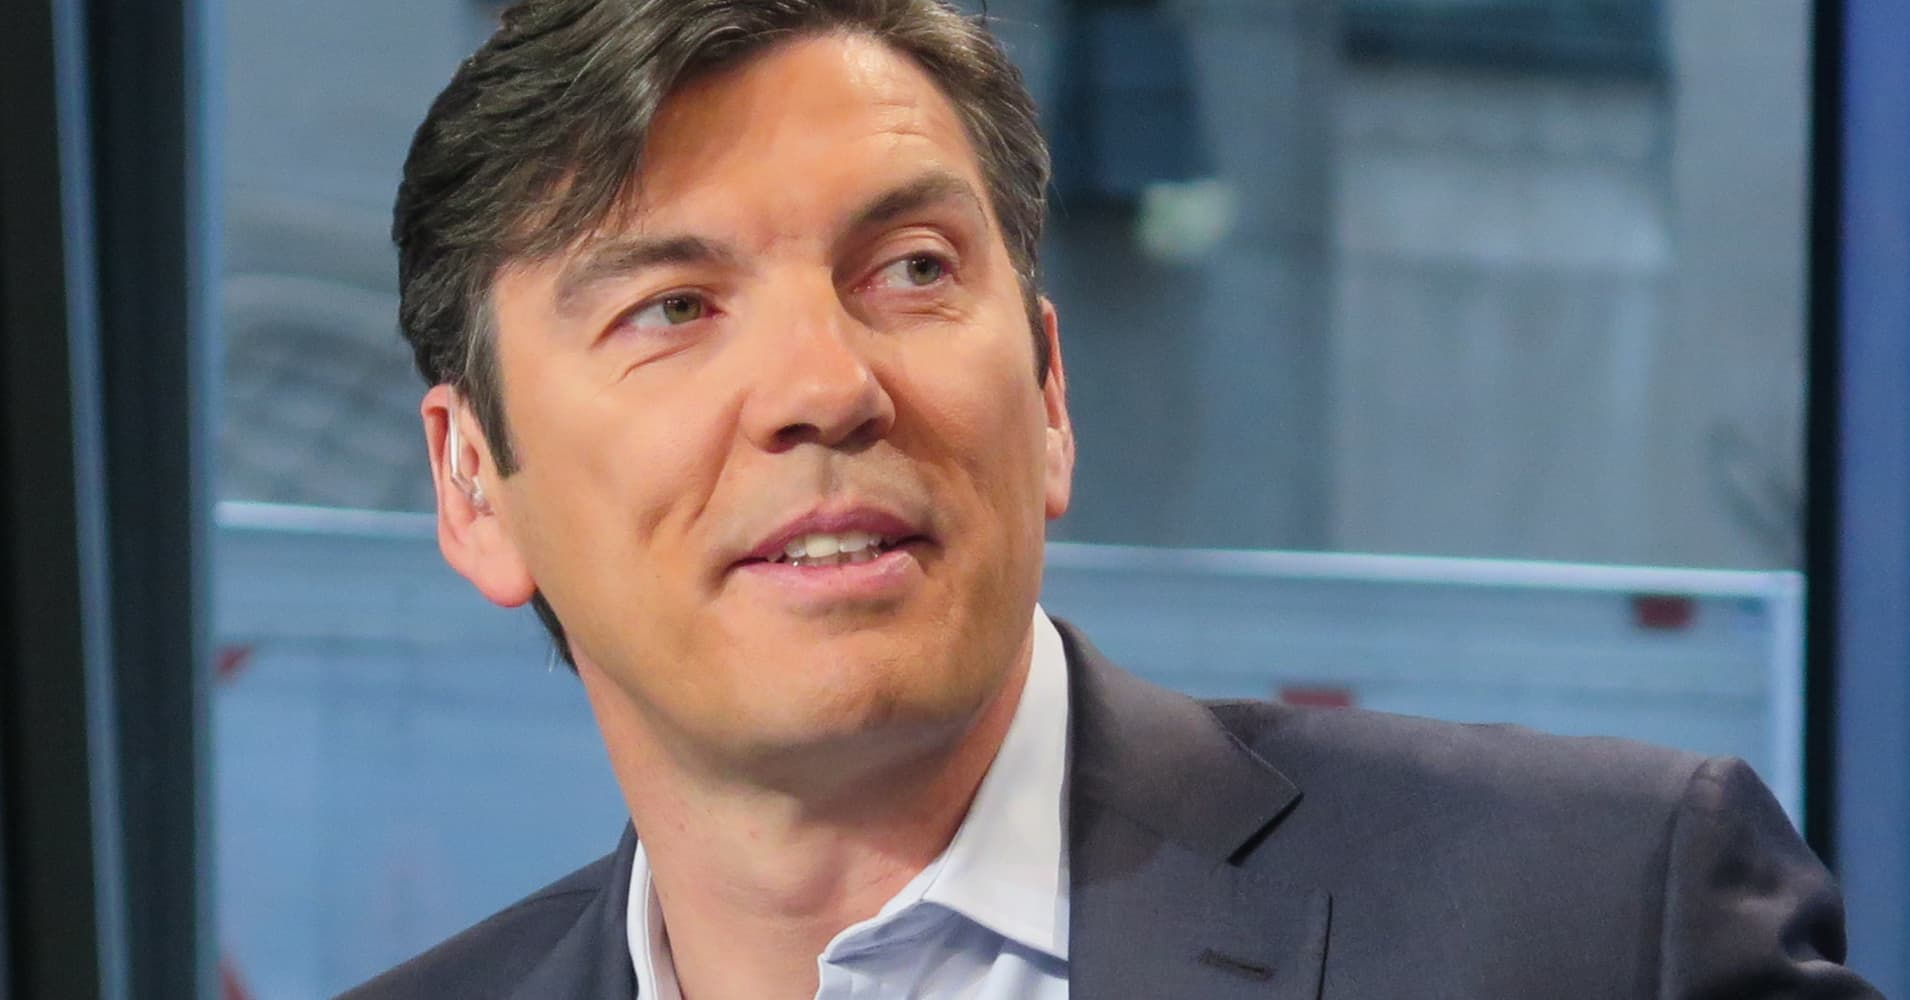 Tim Armstrong launches the dtx company, focused on direct-to-consumer